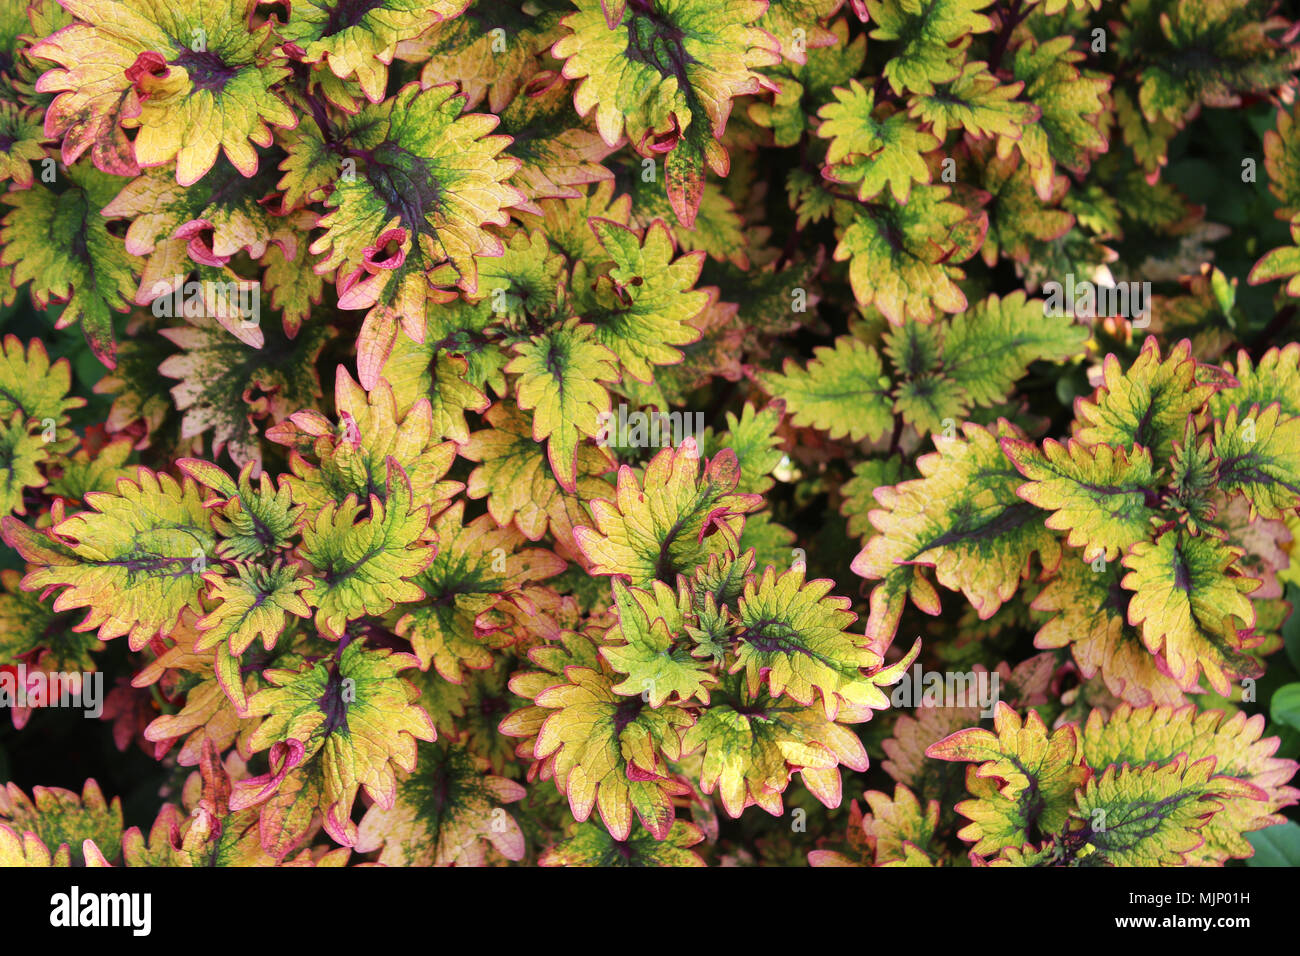 Close up of serrated plant leaves, green leaves with pink edging and purple center - Stock Image